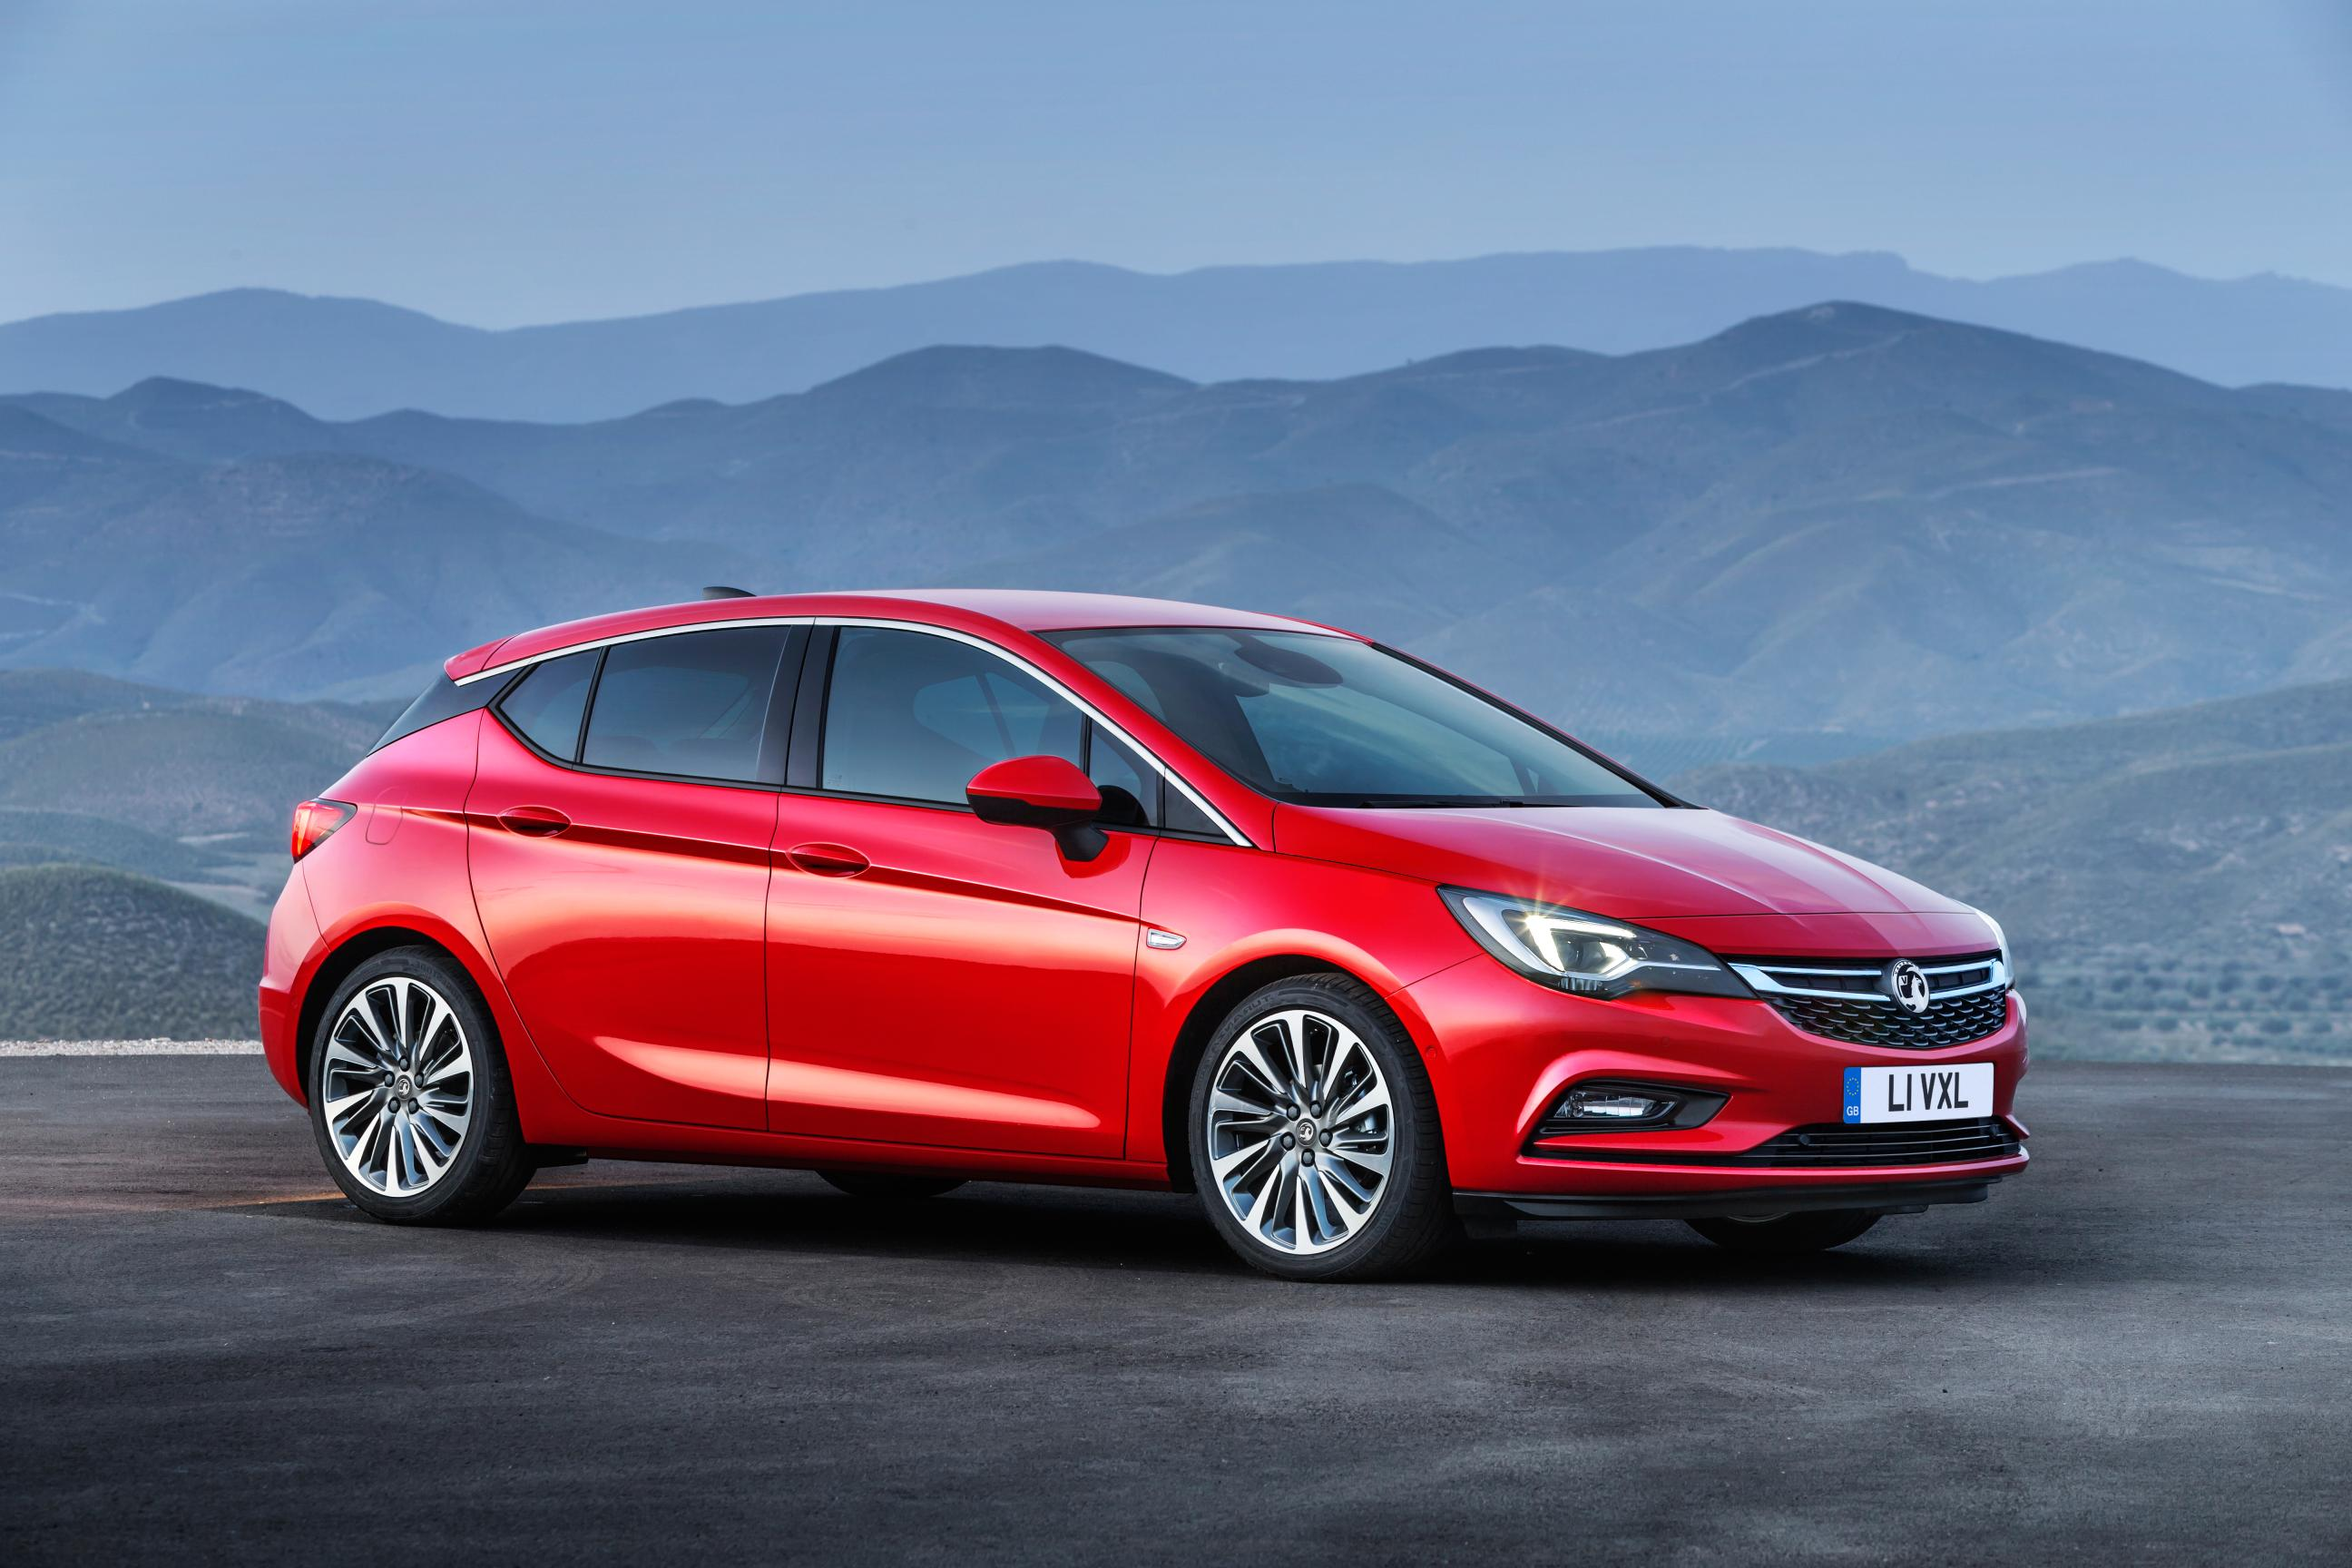 Brake Pads Cost >> All-New Vauxhall Astra Will Cost £15,295 OTR in Britain - autoevolution